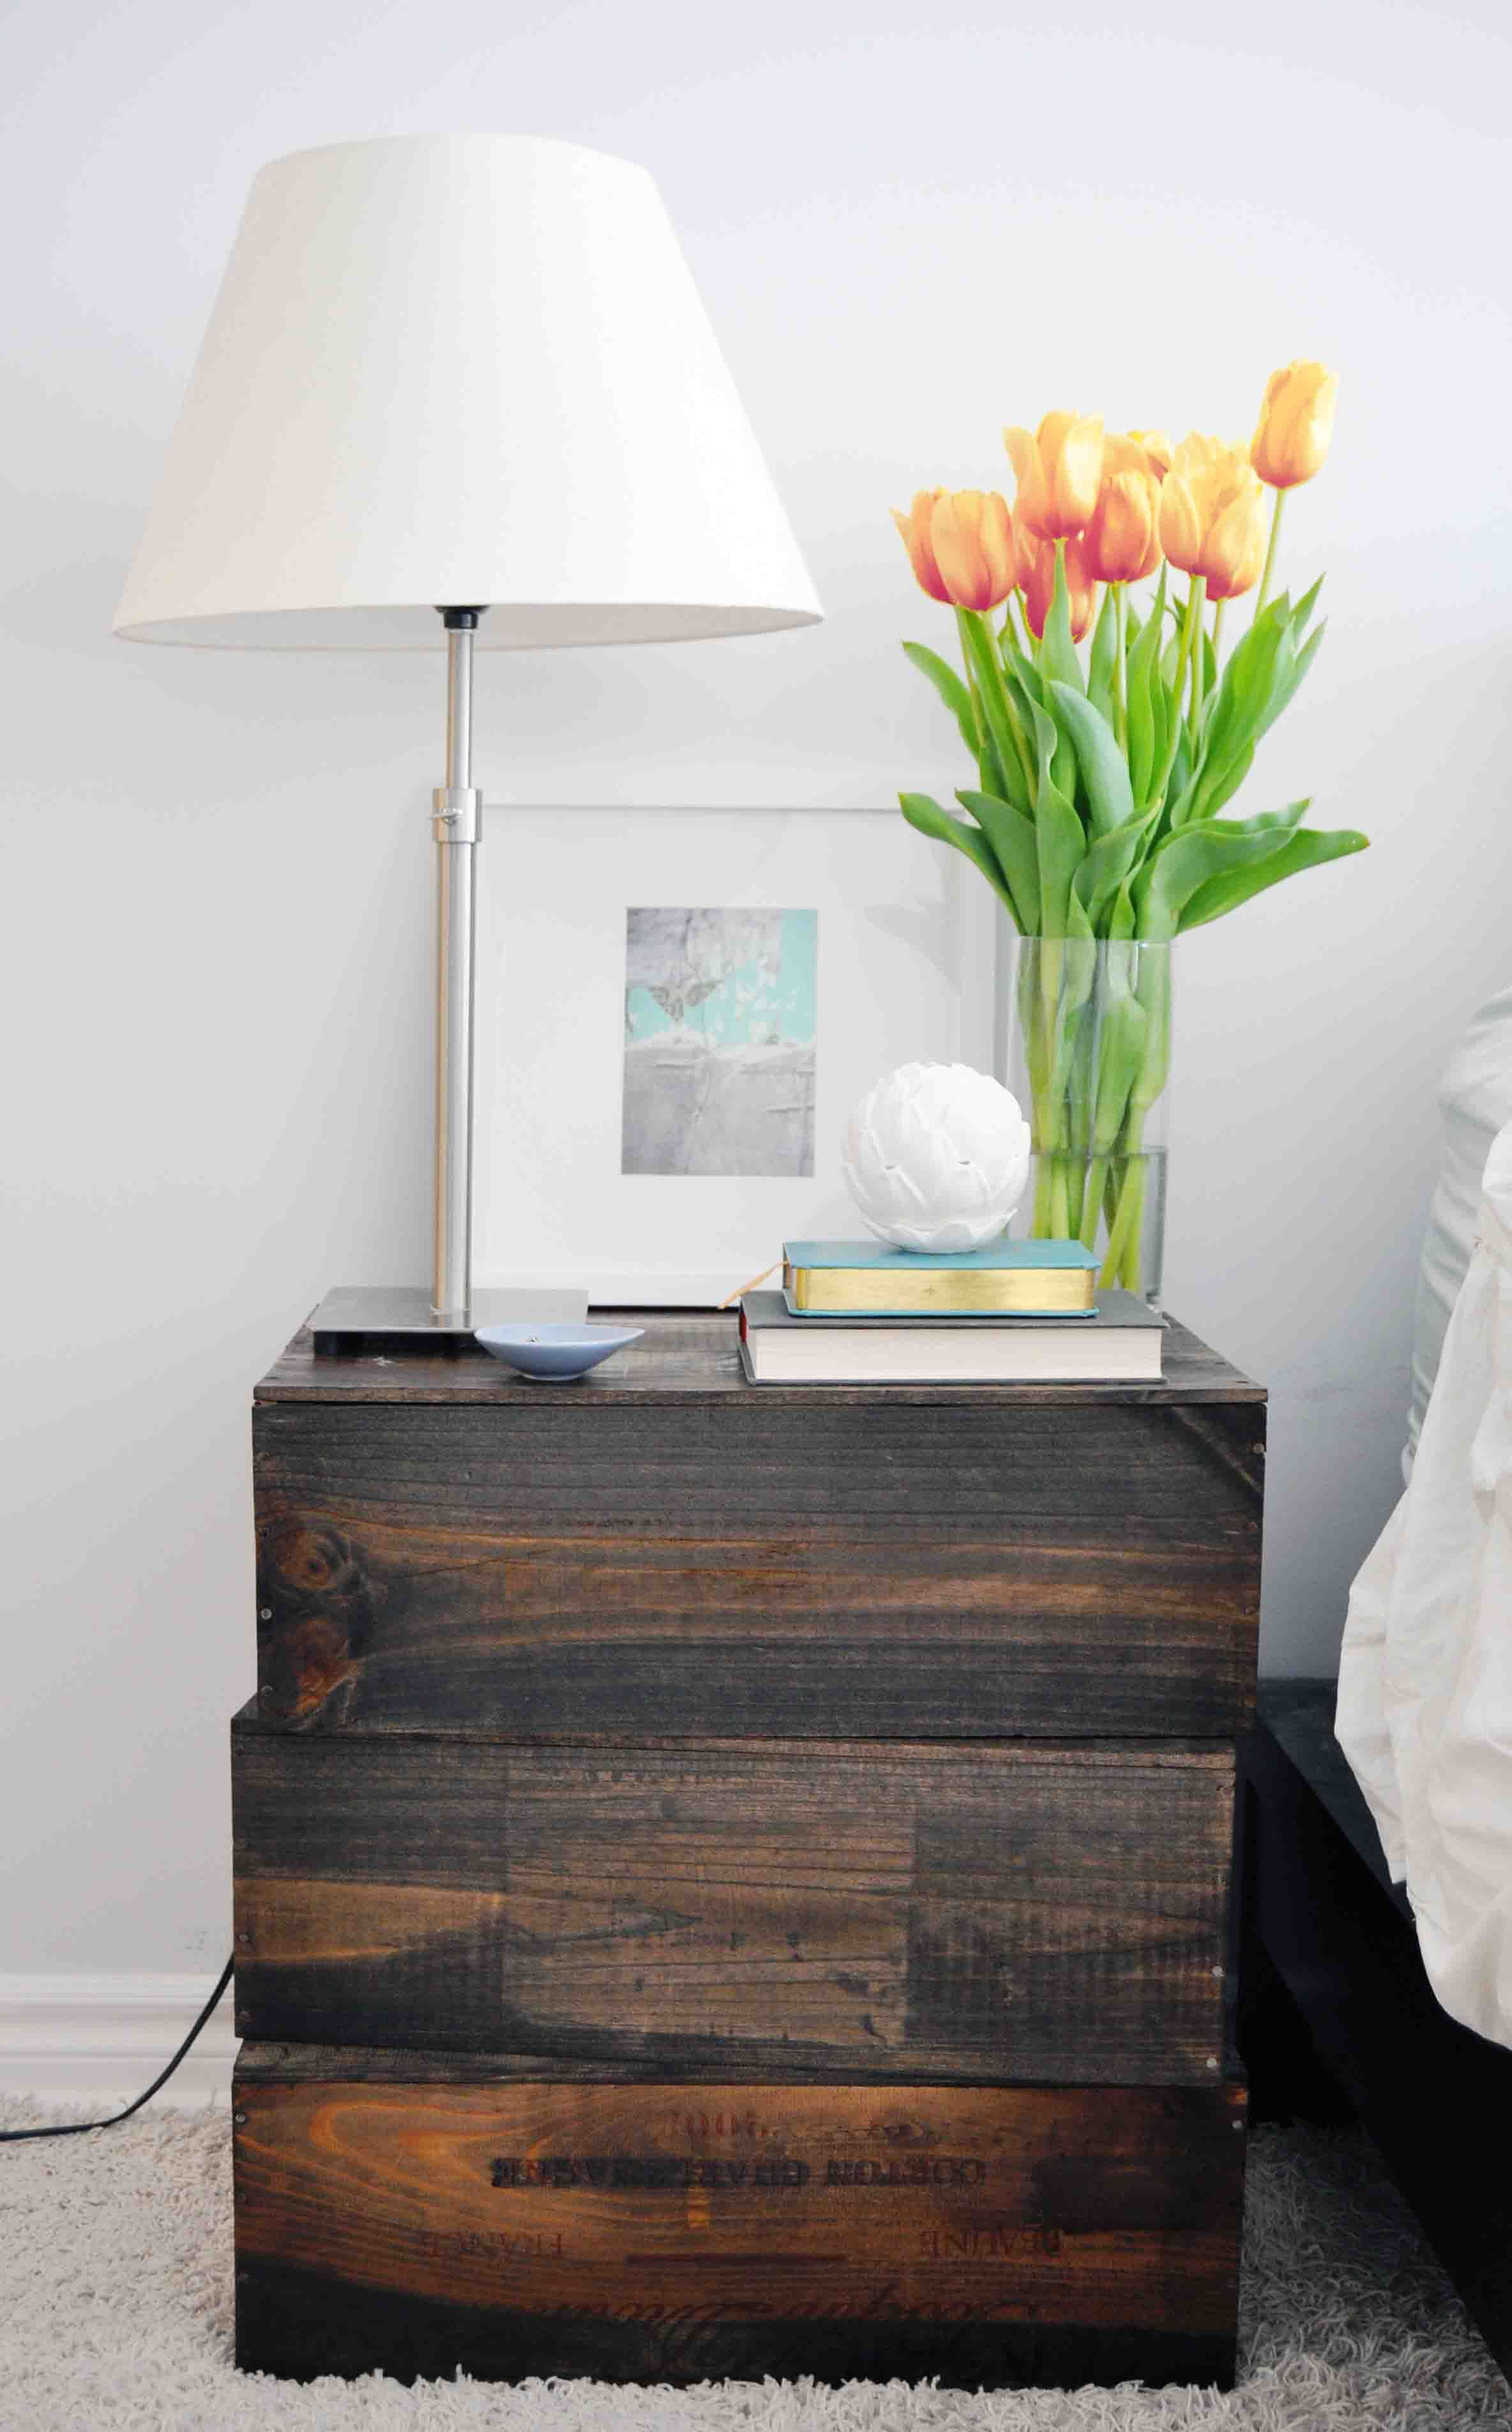 Diy Bedside Table how to d.i.y. a gorgeous $3 nightstand | nightstands, diy